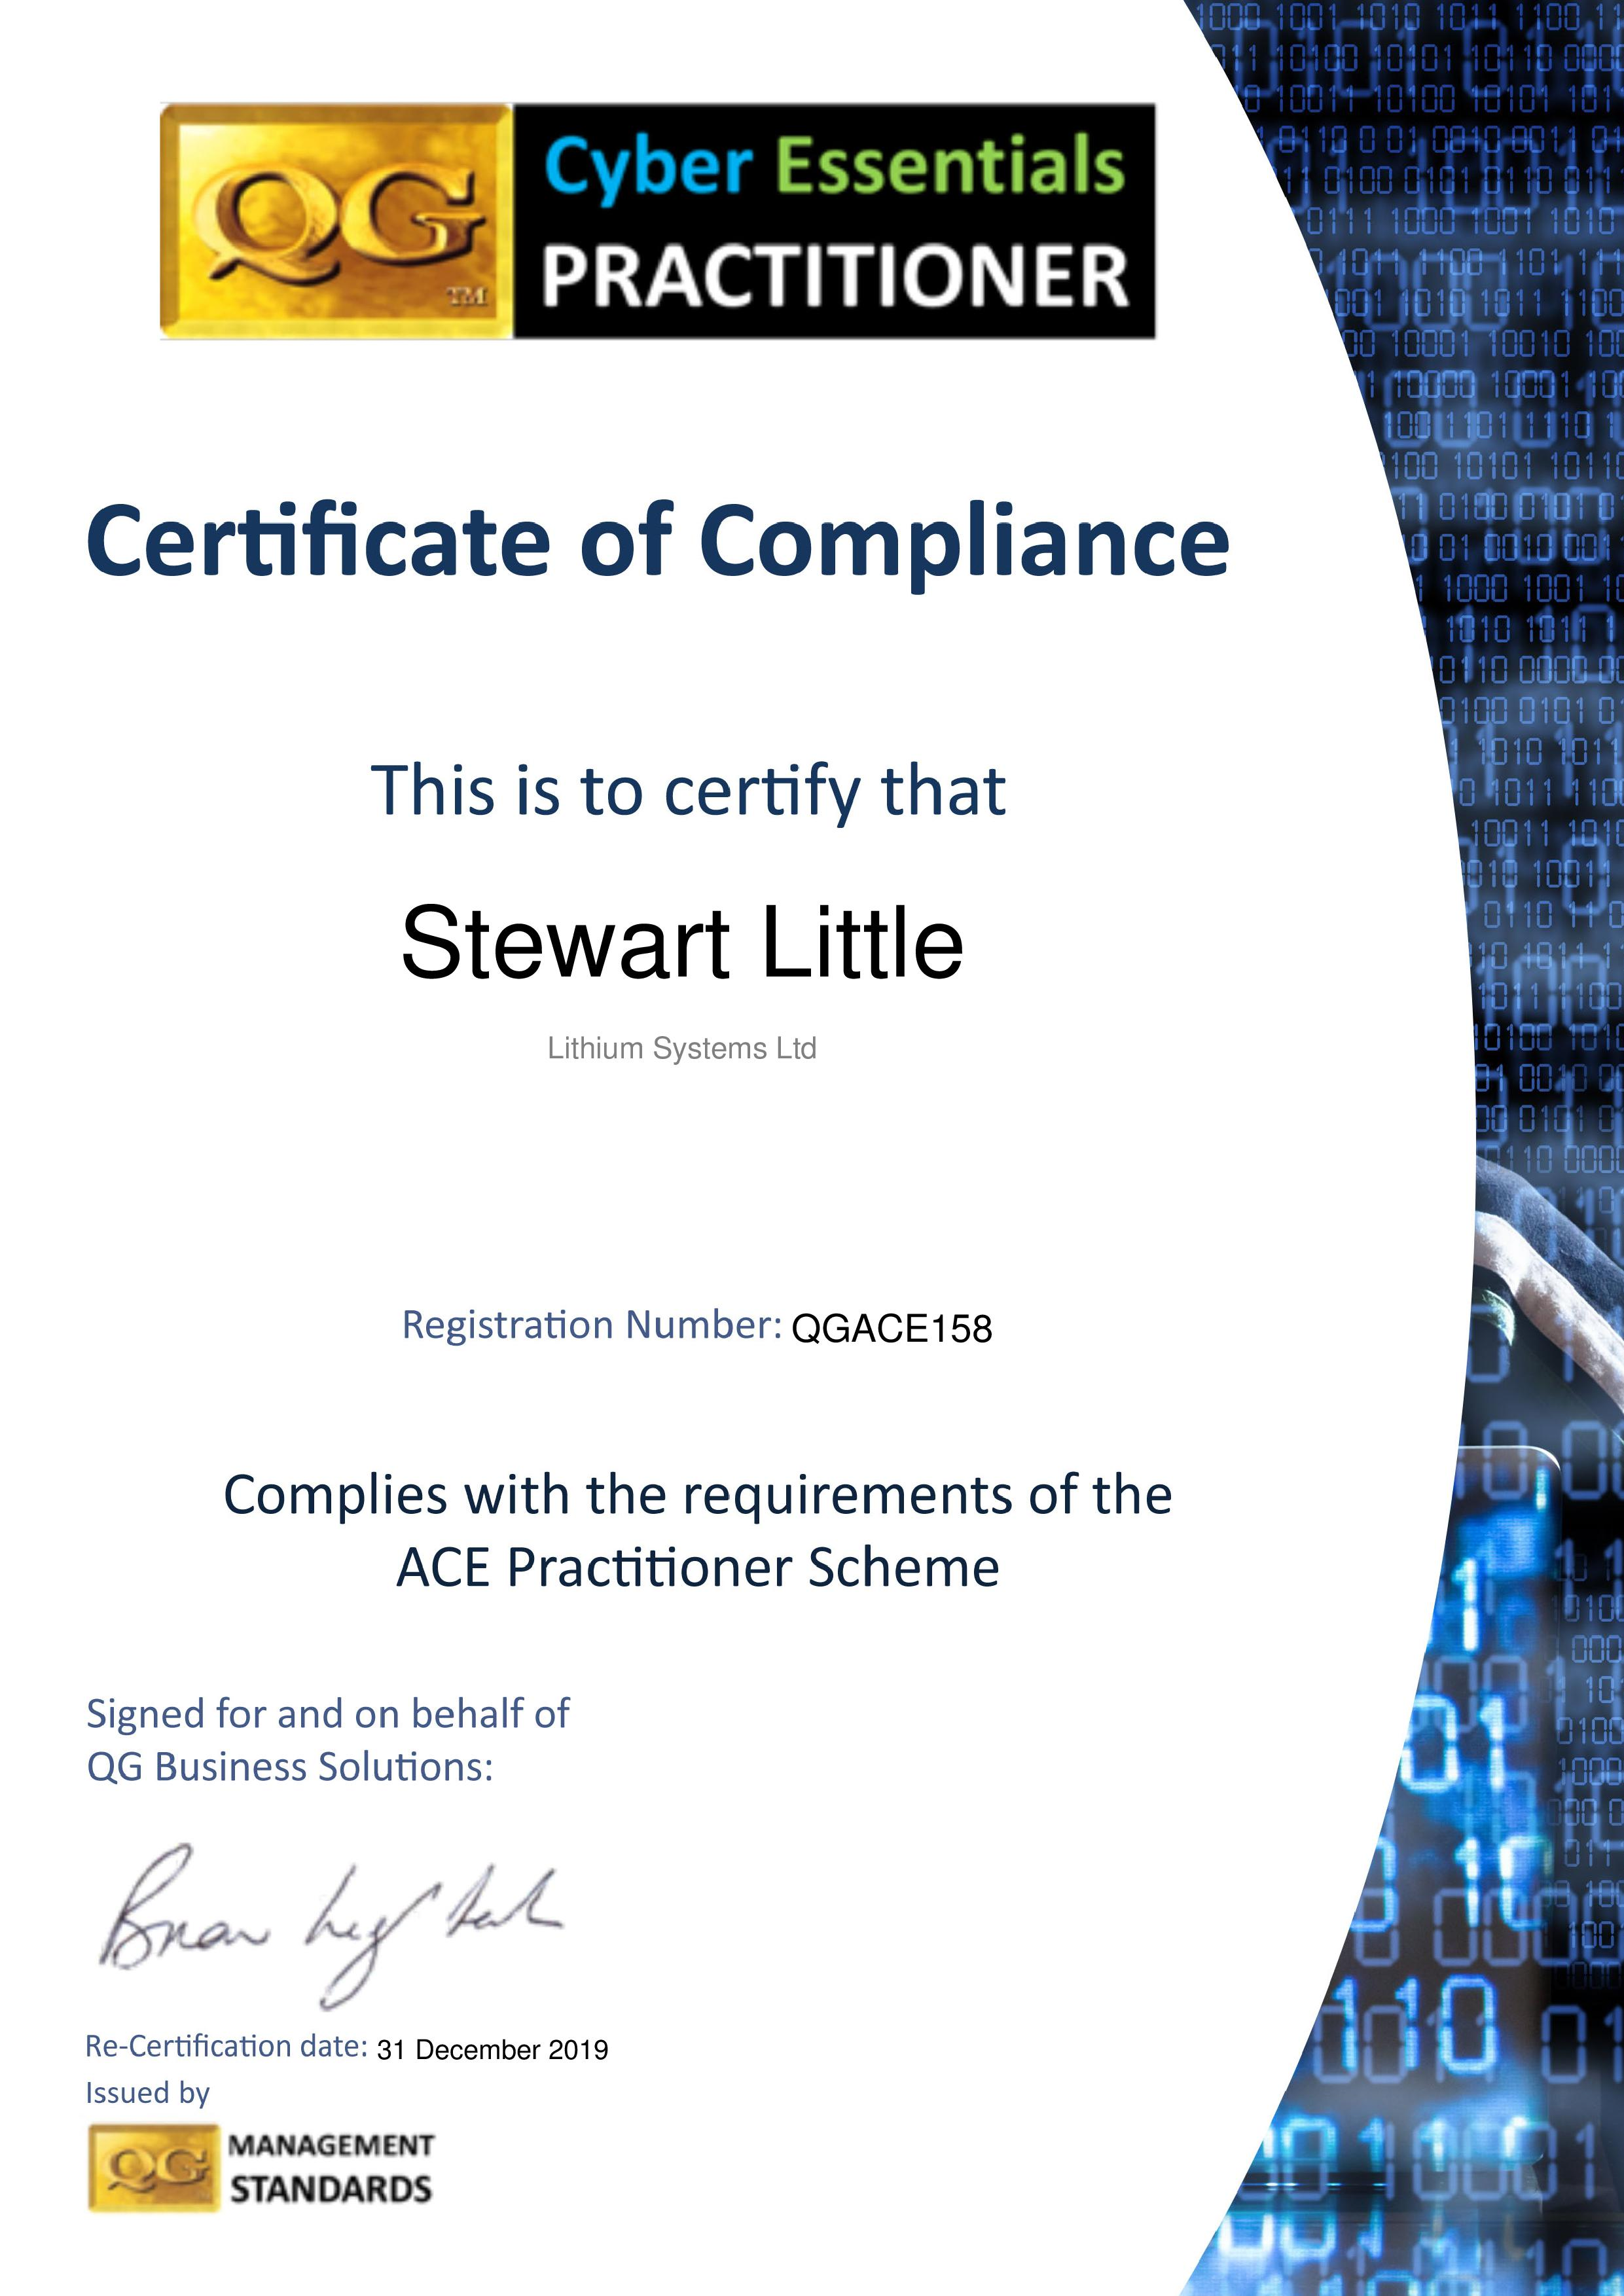 QGACE158 Lithium Systems Ltd